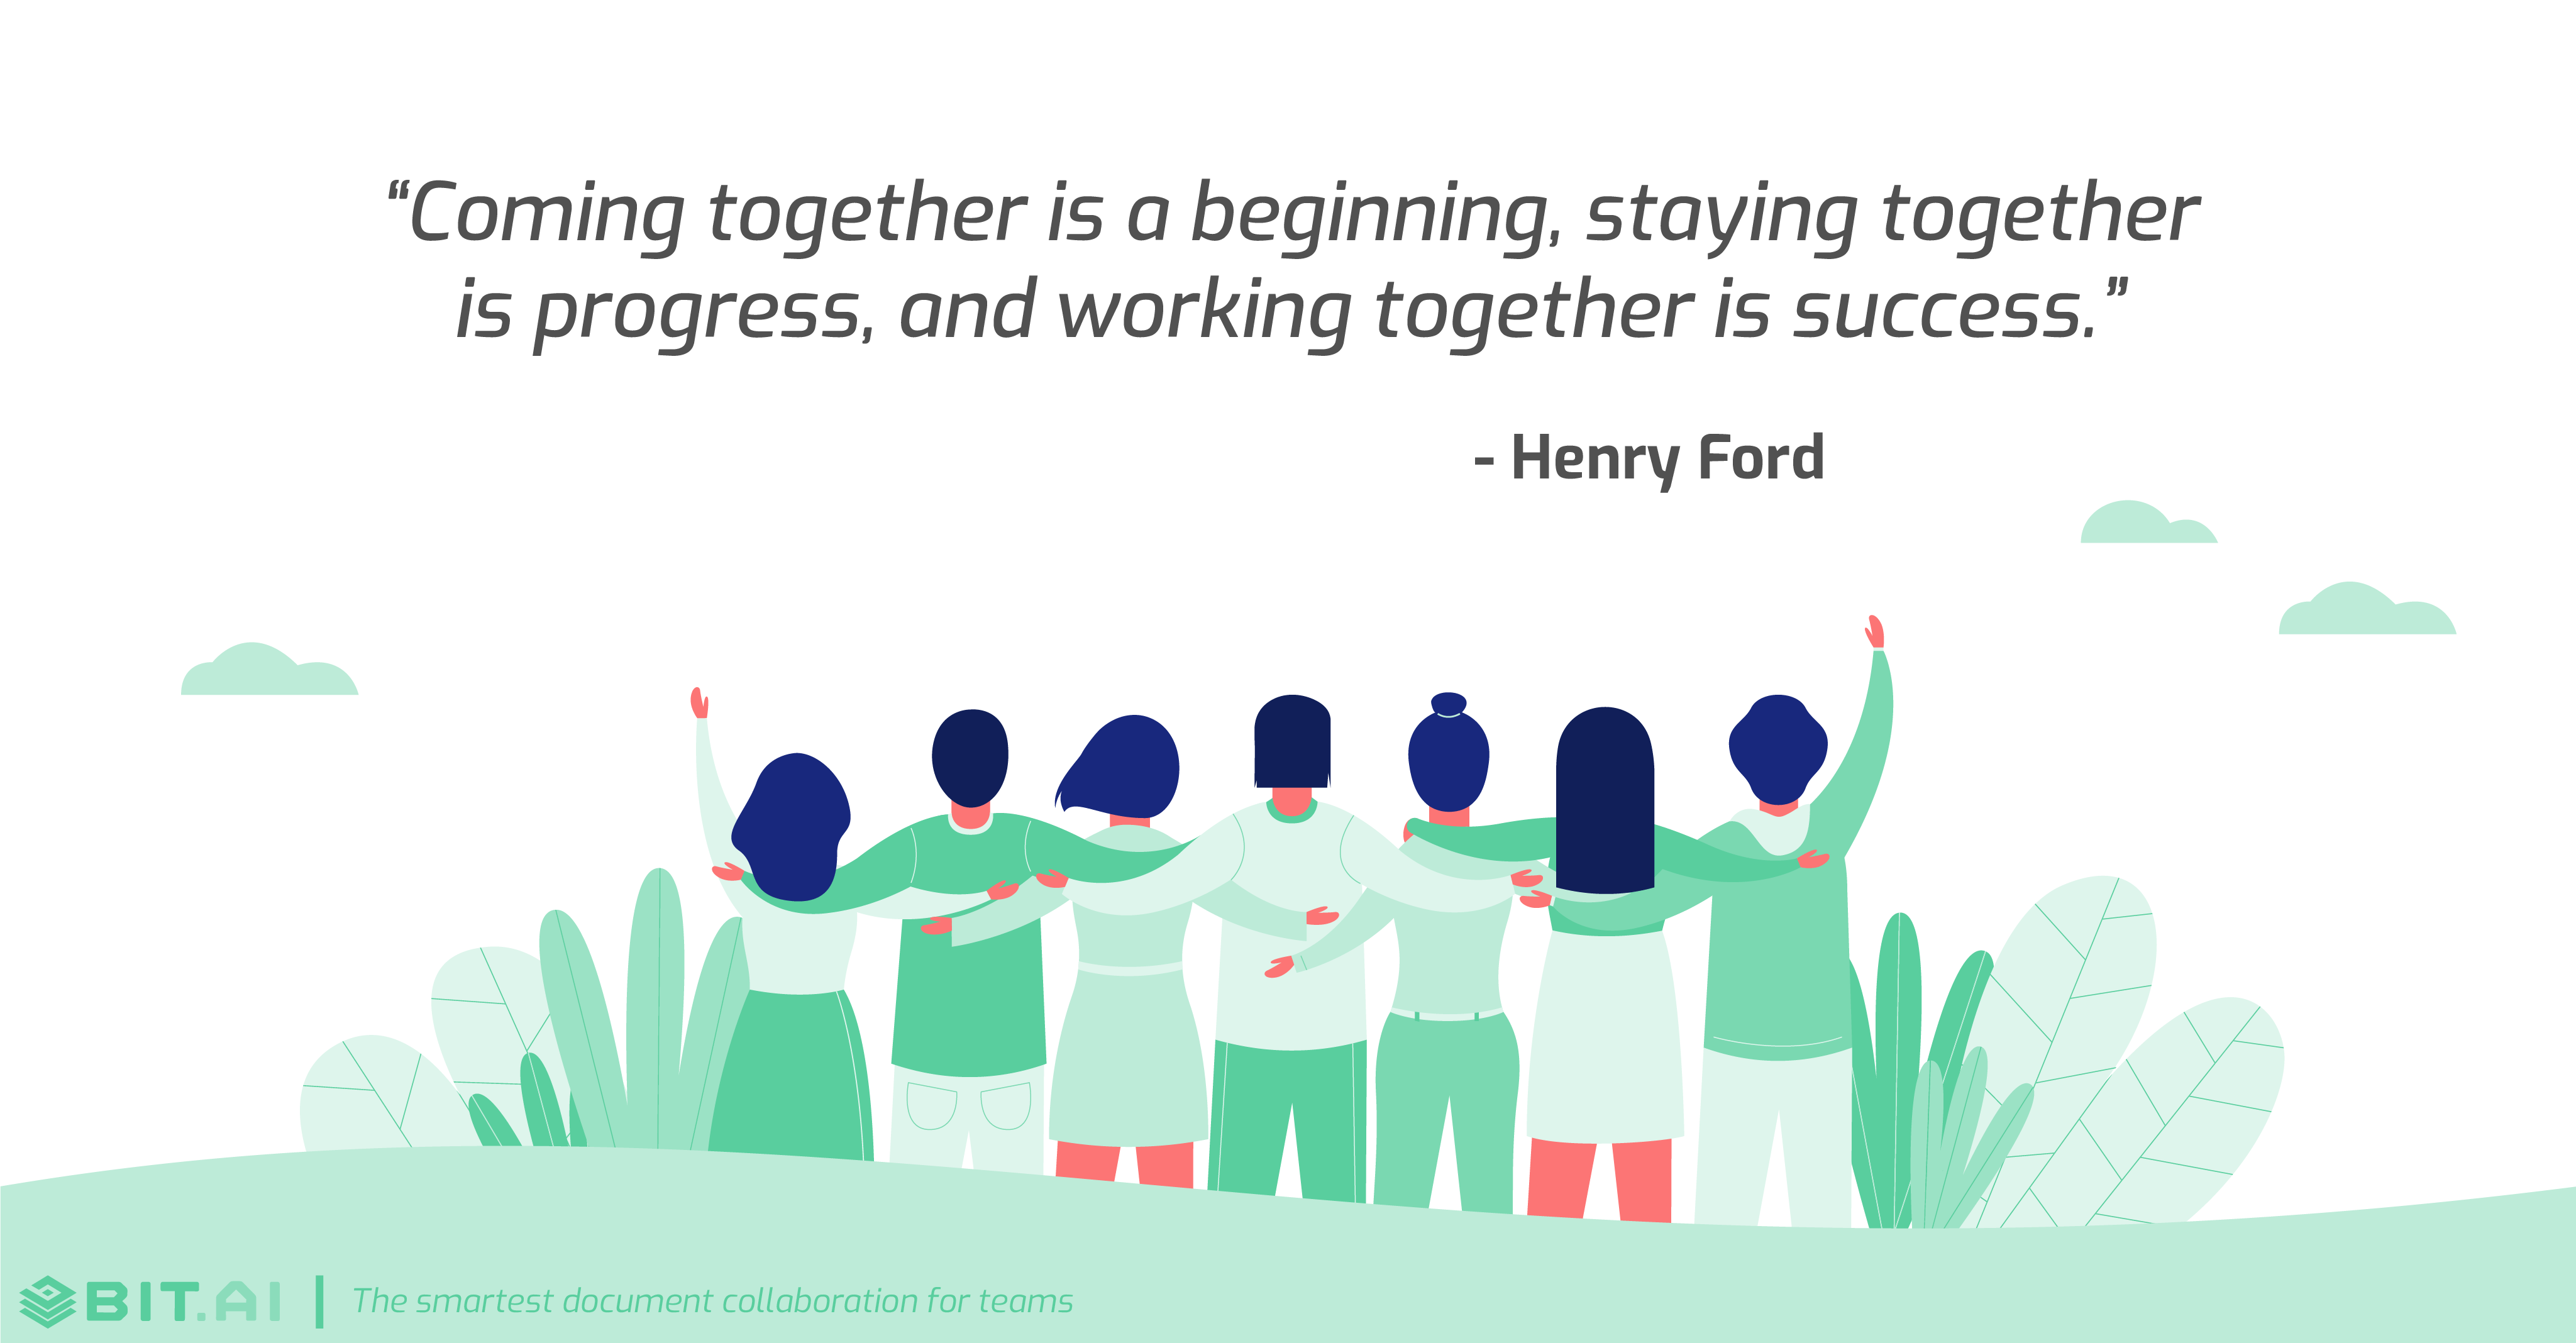 Teamwork collaboration quote by Henry Ford